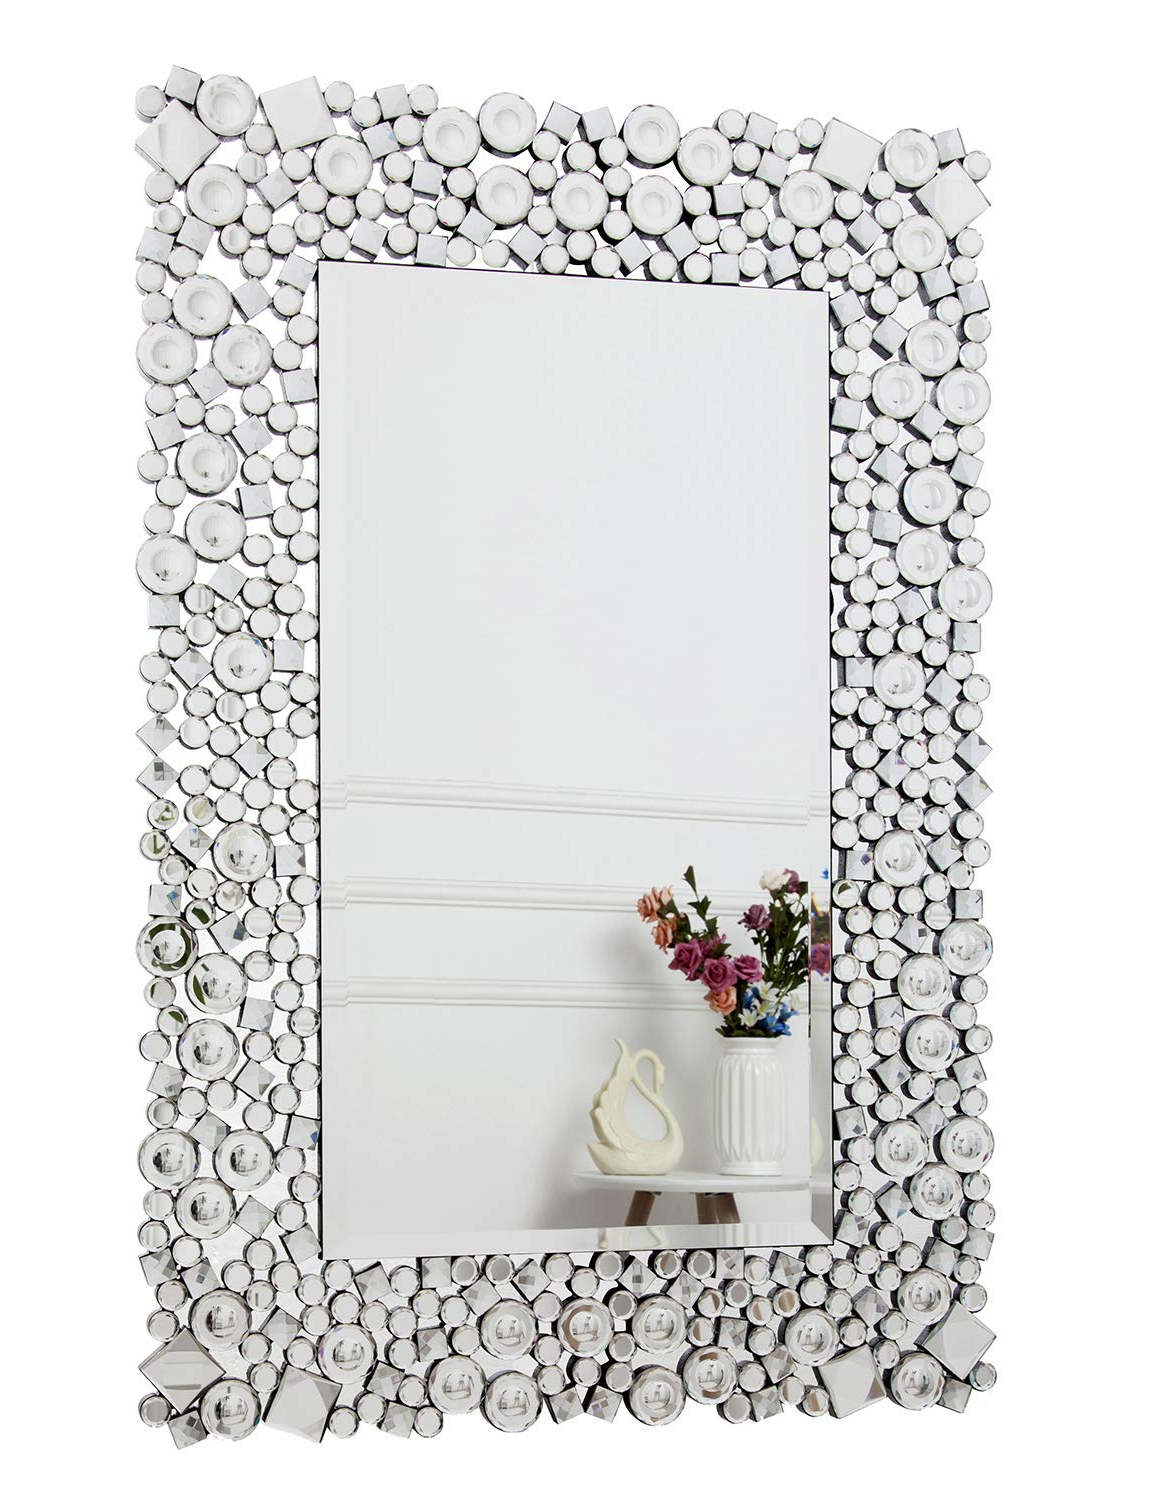 Fashionable Hallway Wall Mirrors For Richtop Wall Mirror Large Crystal Jewel Mosaic Framed Rectangle Wall Mounted Mirrors Bevelled Silver Glass Hung For Living Room, Bedroom, Hall, (View 19 of 20)